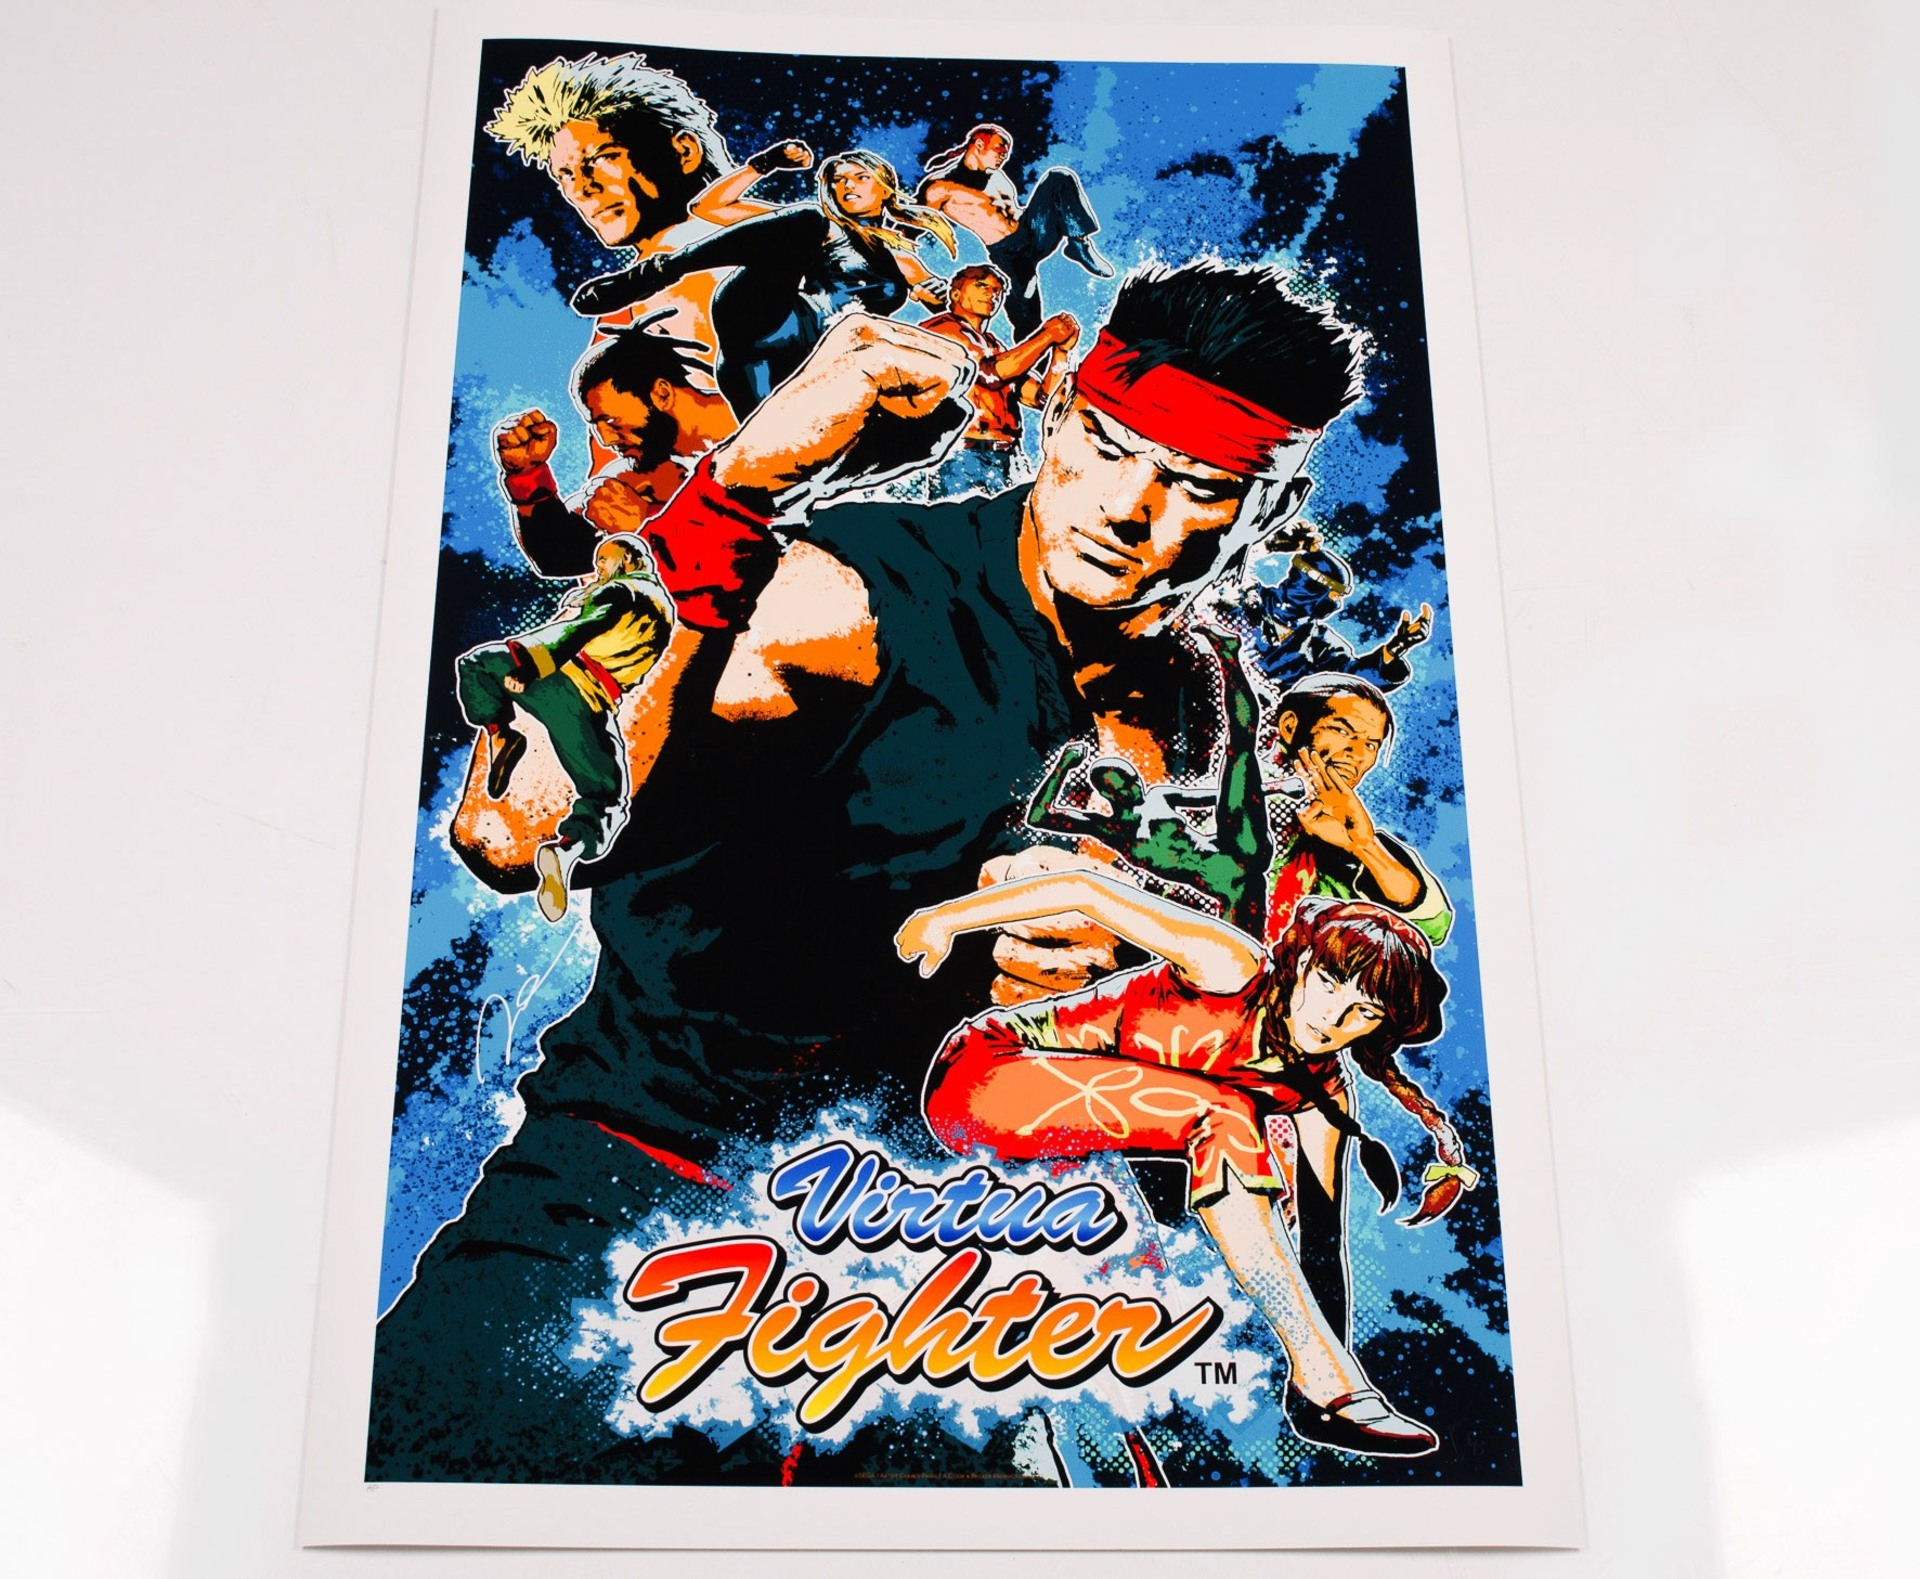 Artwork Virtua Fighter | Virtua Fighter | SEGA